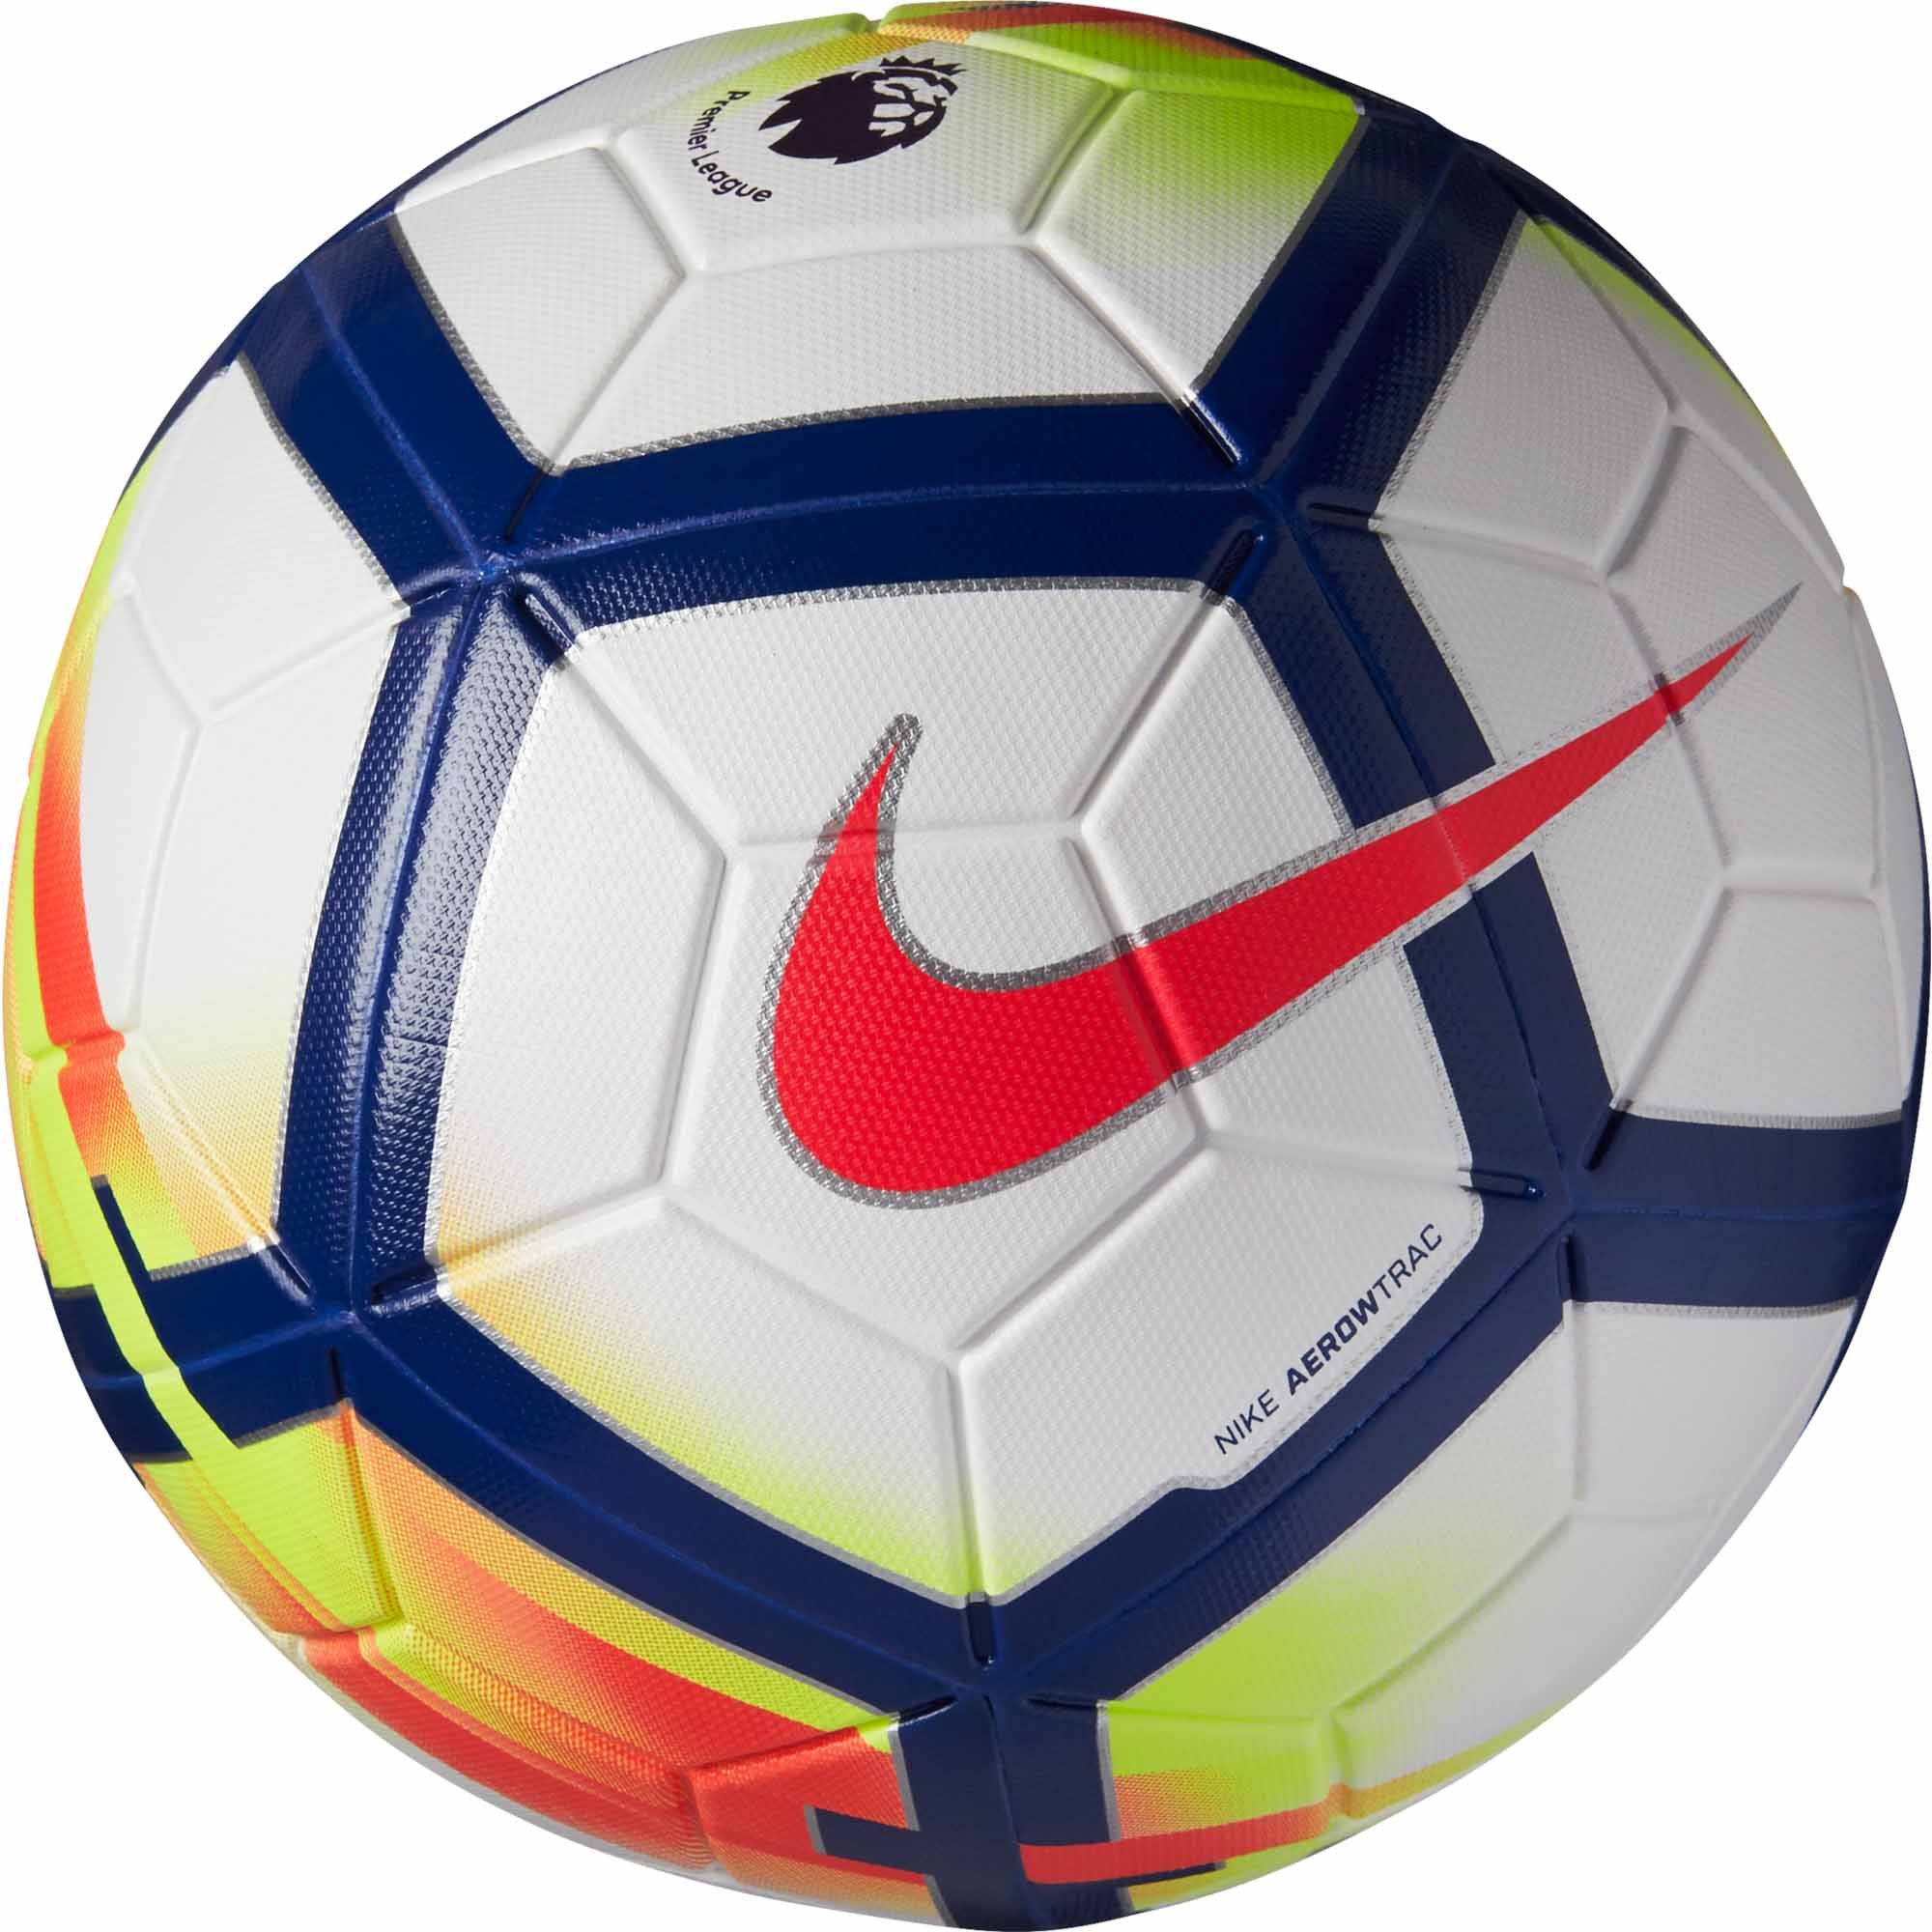 Nike Magia Match Soccer Ball - Premier League - White ...